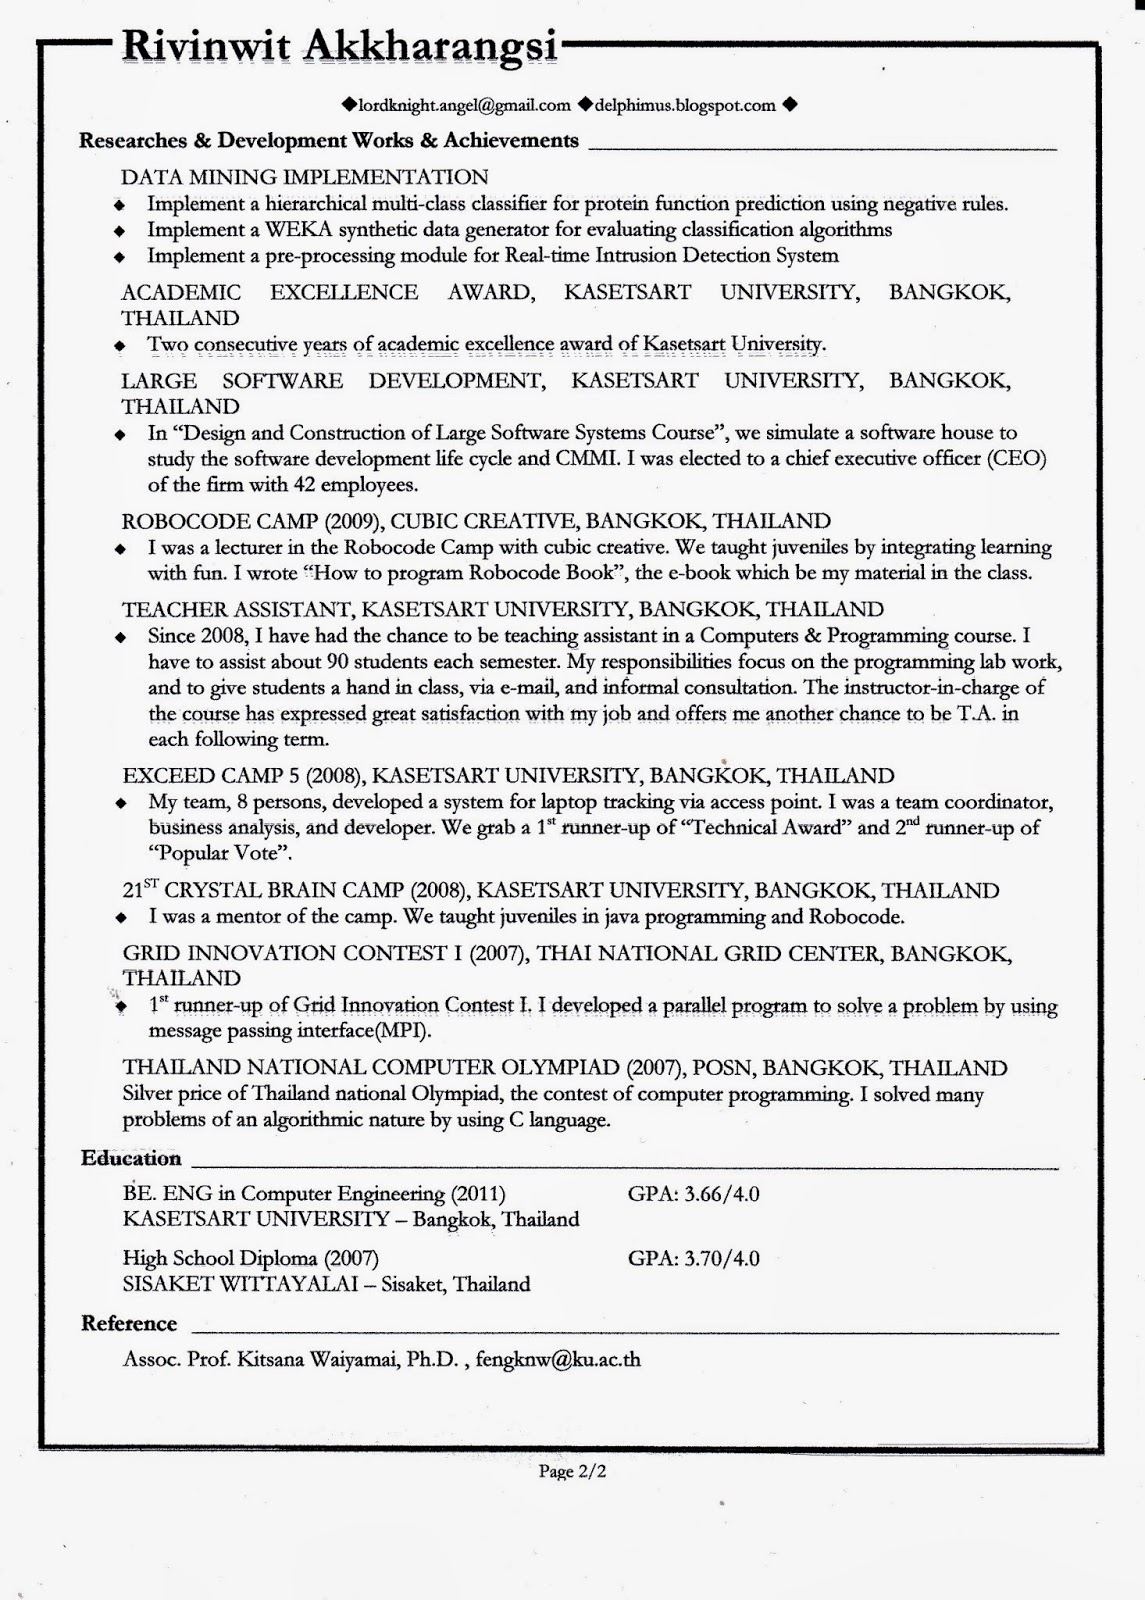 Engineering Resume Format  resume template electrical engineering     Example Of A Basic Resume